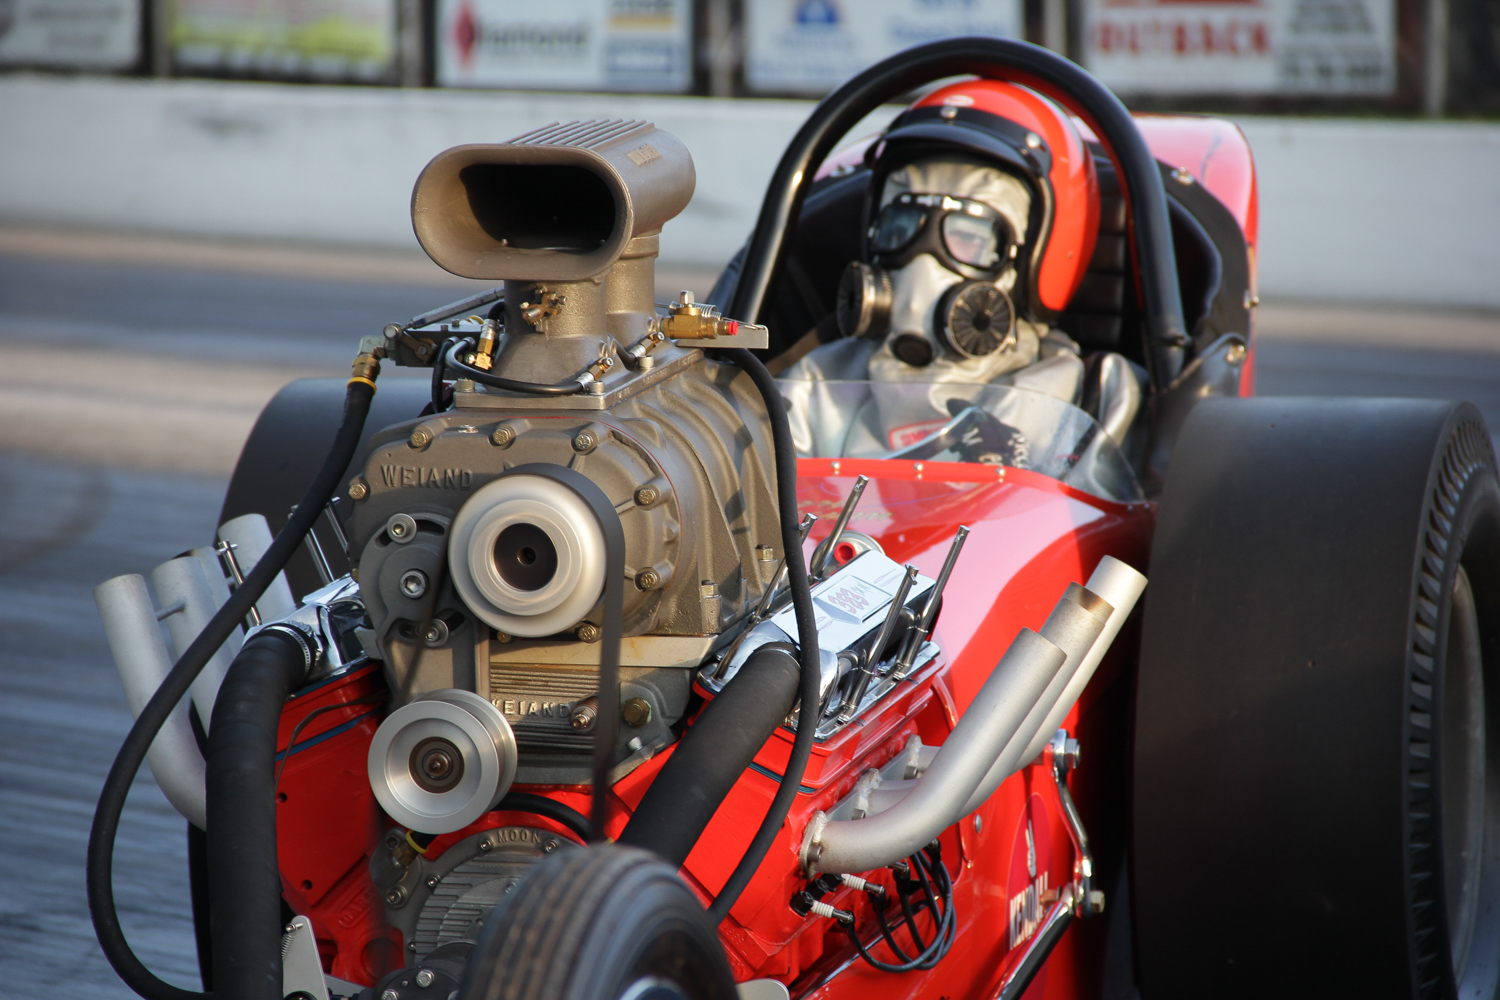 Weiand supercharger sitting on top of a Chevy small block V-8